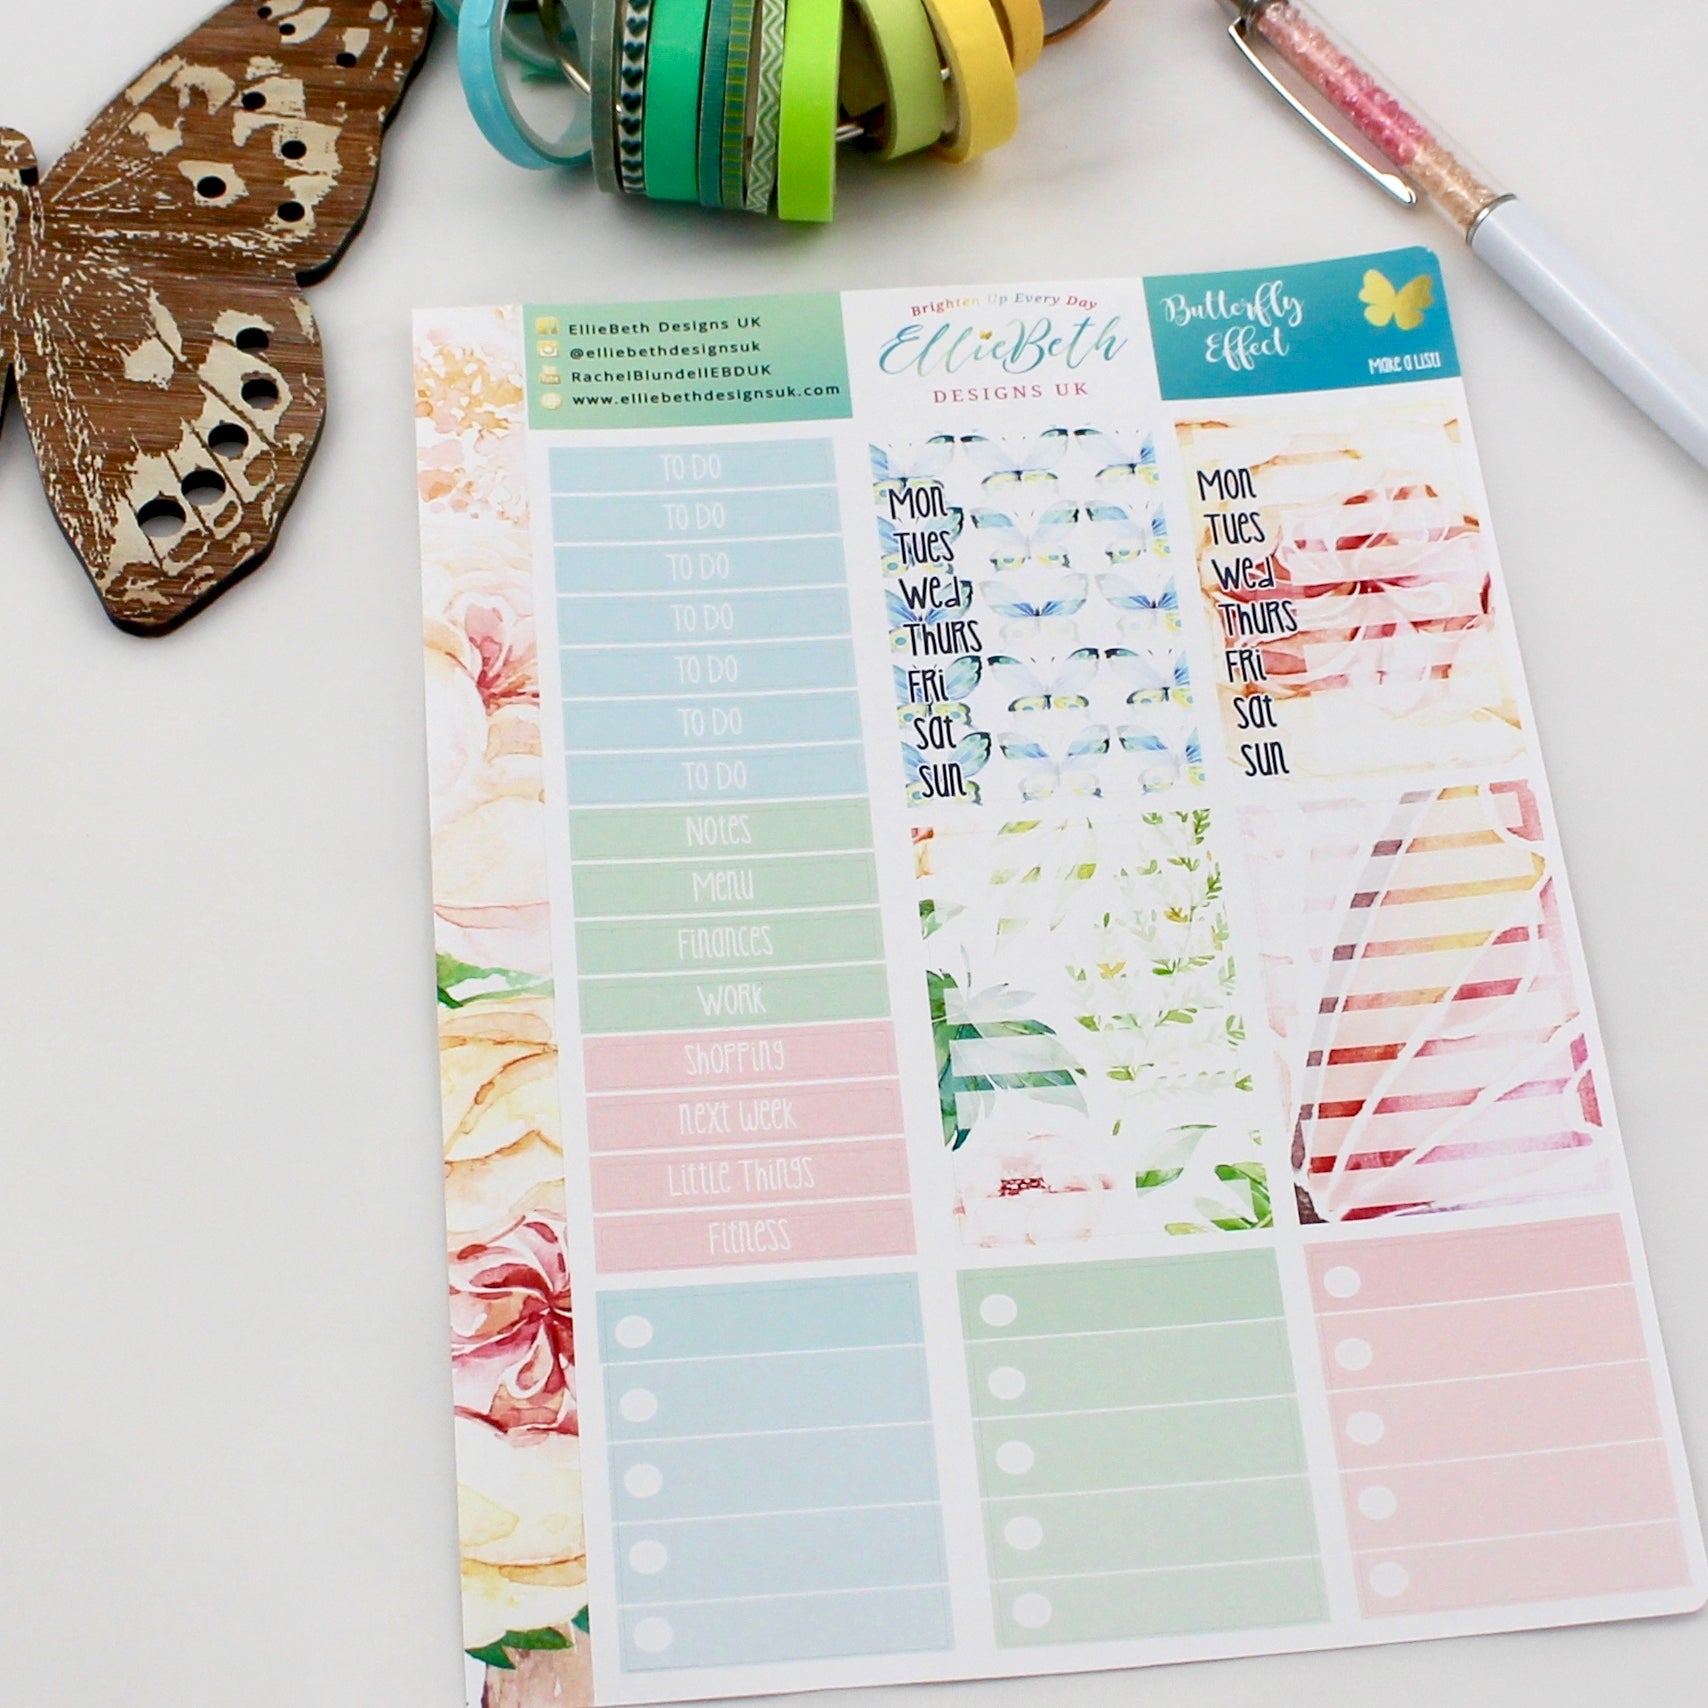 'Butterfly Effect' - Make a List Sheet -  A5 binder ready planner stickers - EllieBeth Designs UK